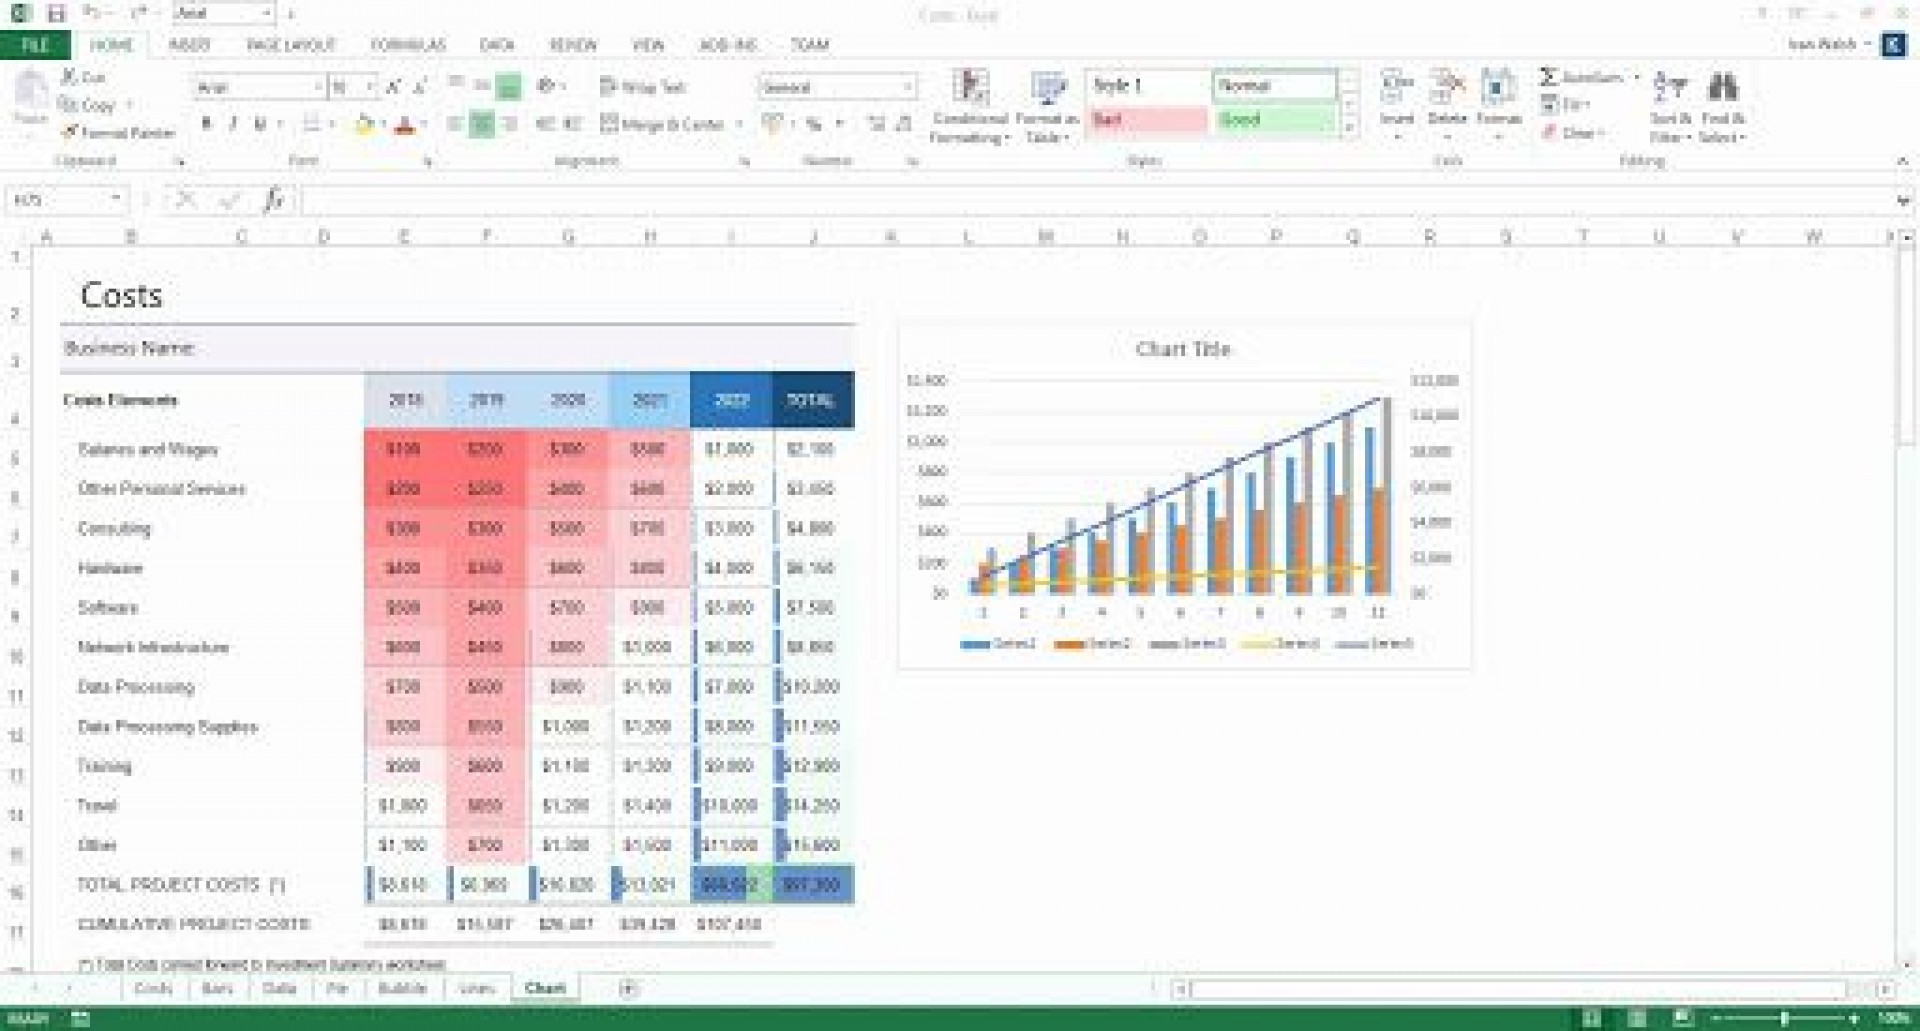 009 Wonderful Busines Plan Template Excel Inspiration  Financial Free Continuity1920